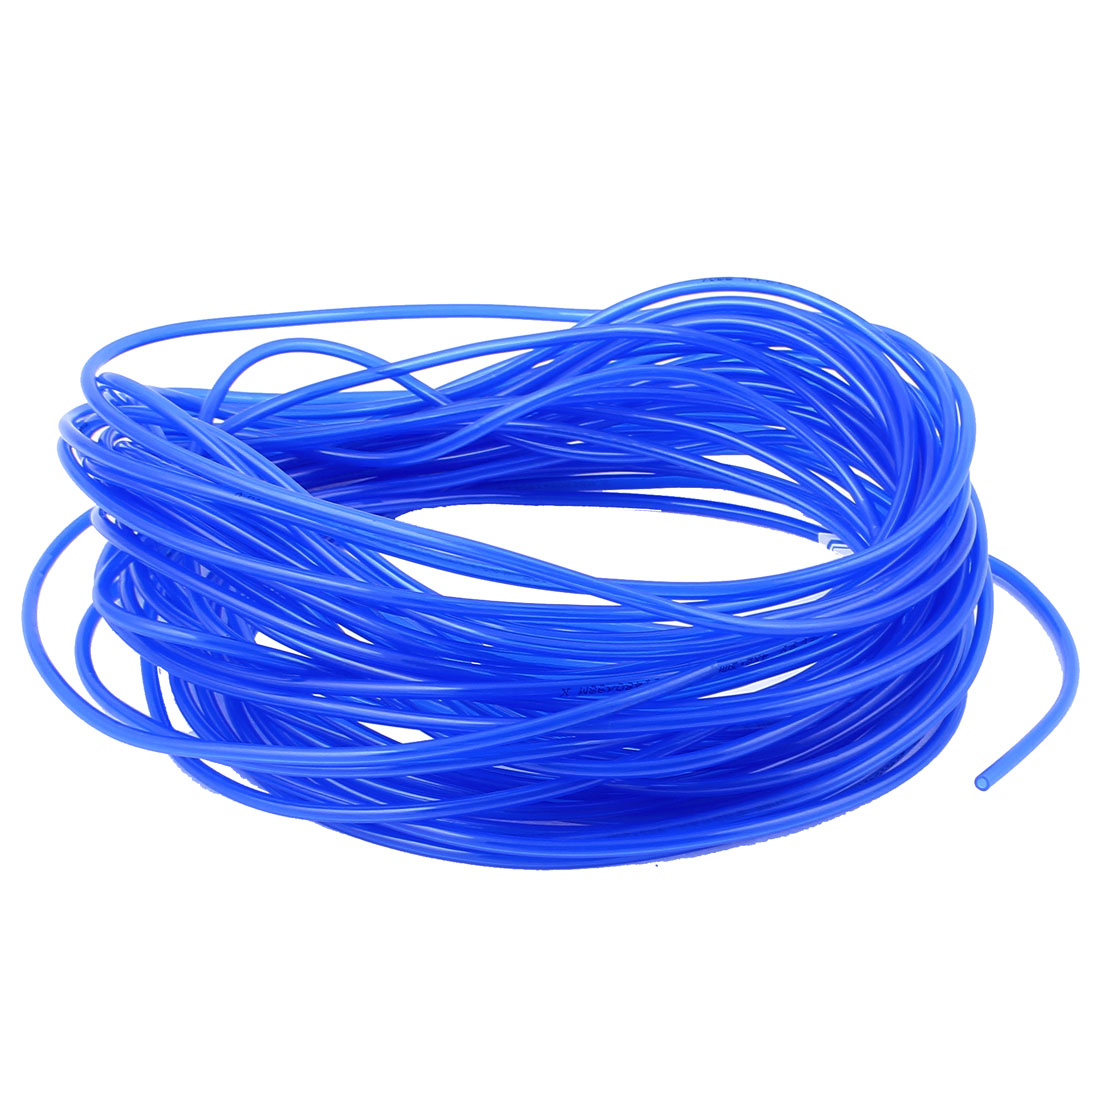 19M Long 4mmx2.5mm Dia Pneumatic Polyurethane PU Air Tube Tubing Pipe Hose Blue